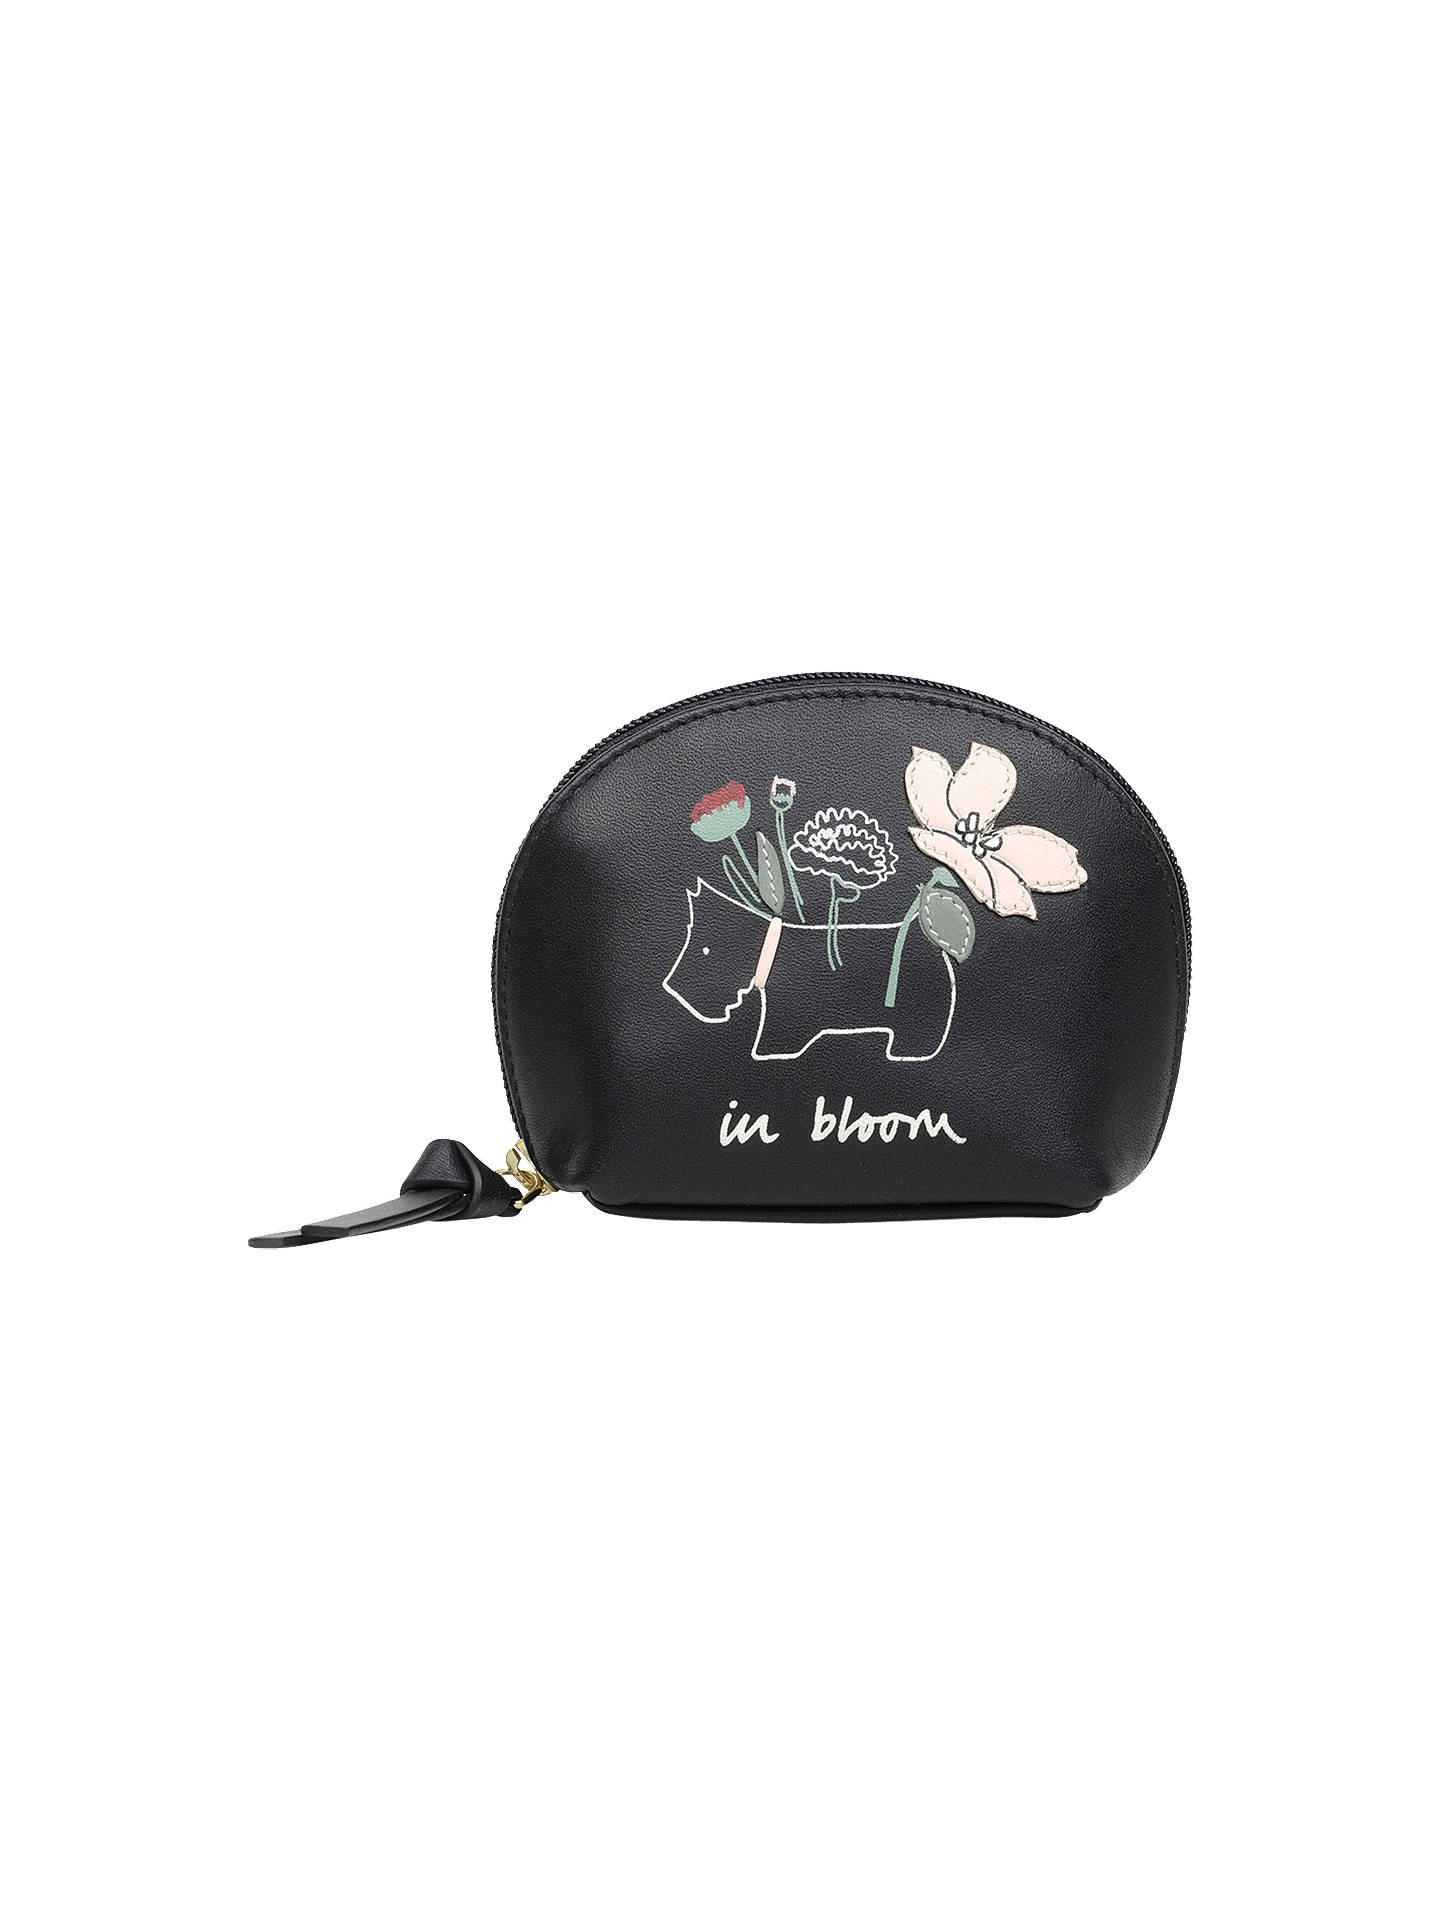 Buy Radley In Bloom Leather Small Coin Purse, Black Online at johnlewis.com